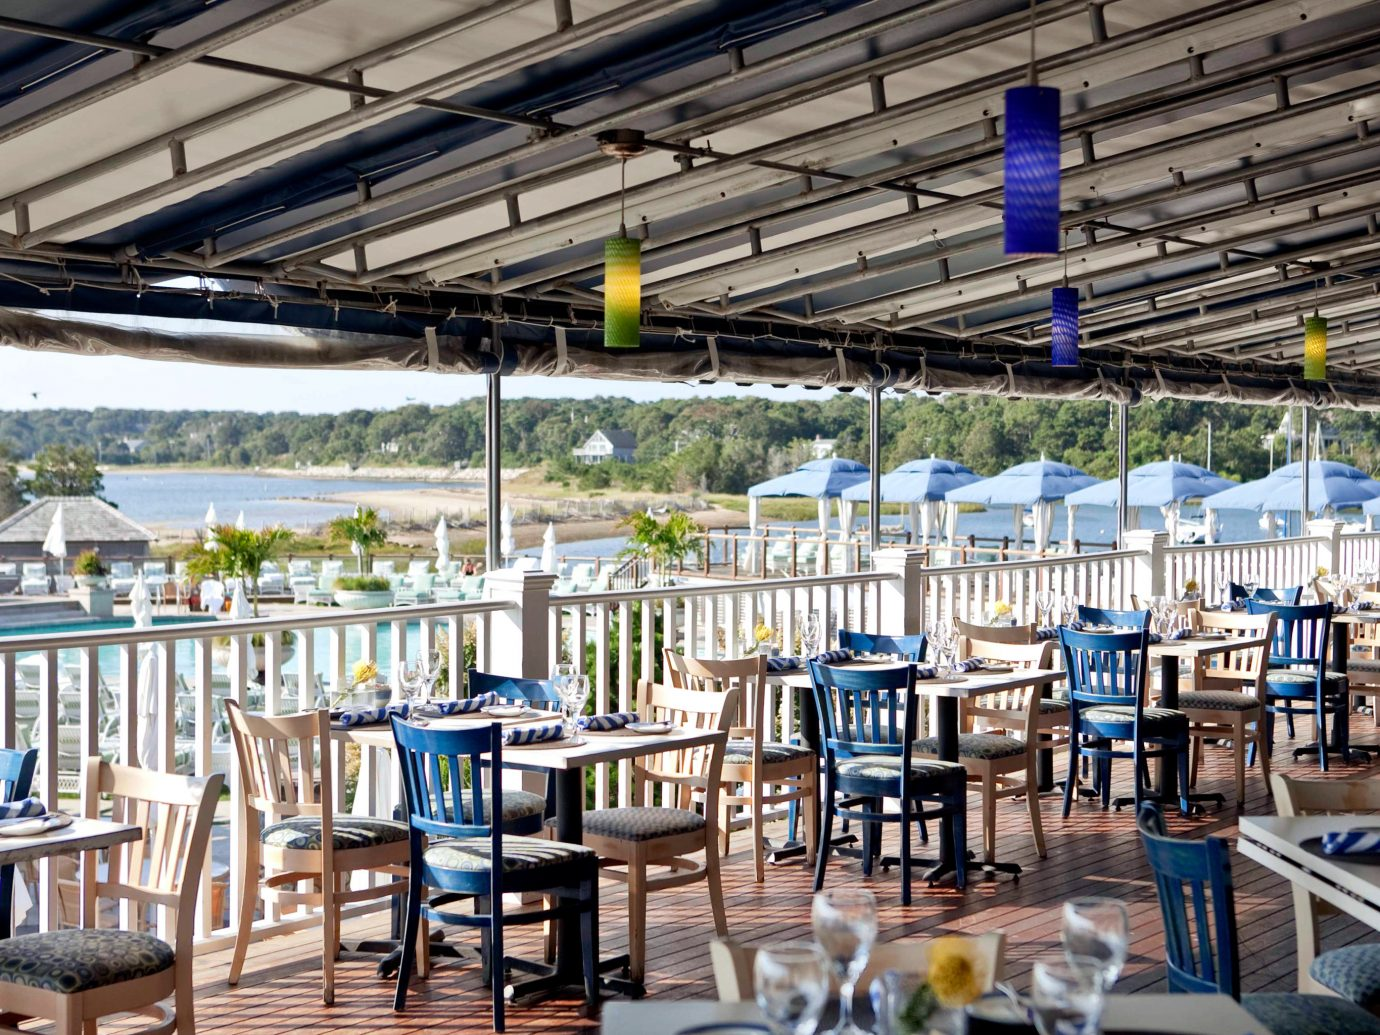 Balcony Deck Dining Drink Eat Food + Drink Hotels Living Lounge Luxury Travel Patio Resort Terrace Trip Ideas Weekend Getaways chair meal restaurant several